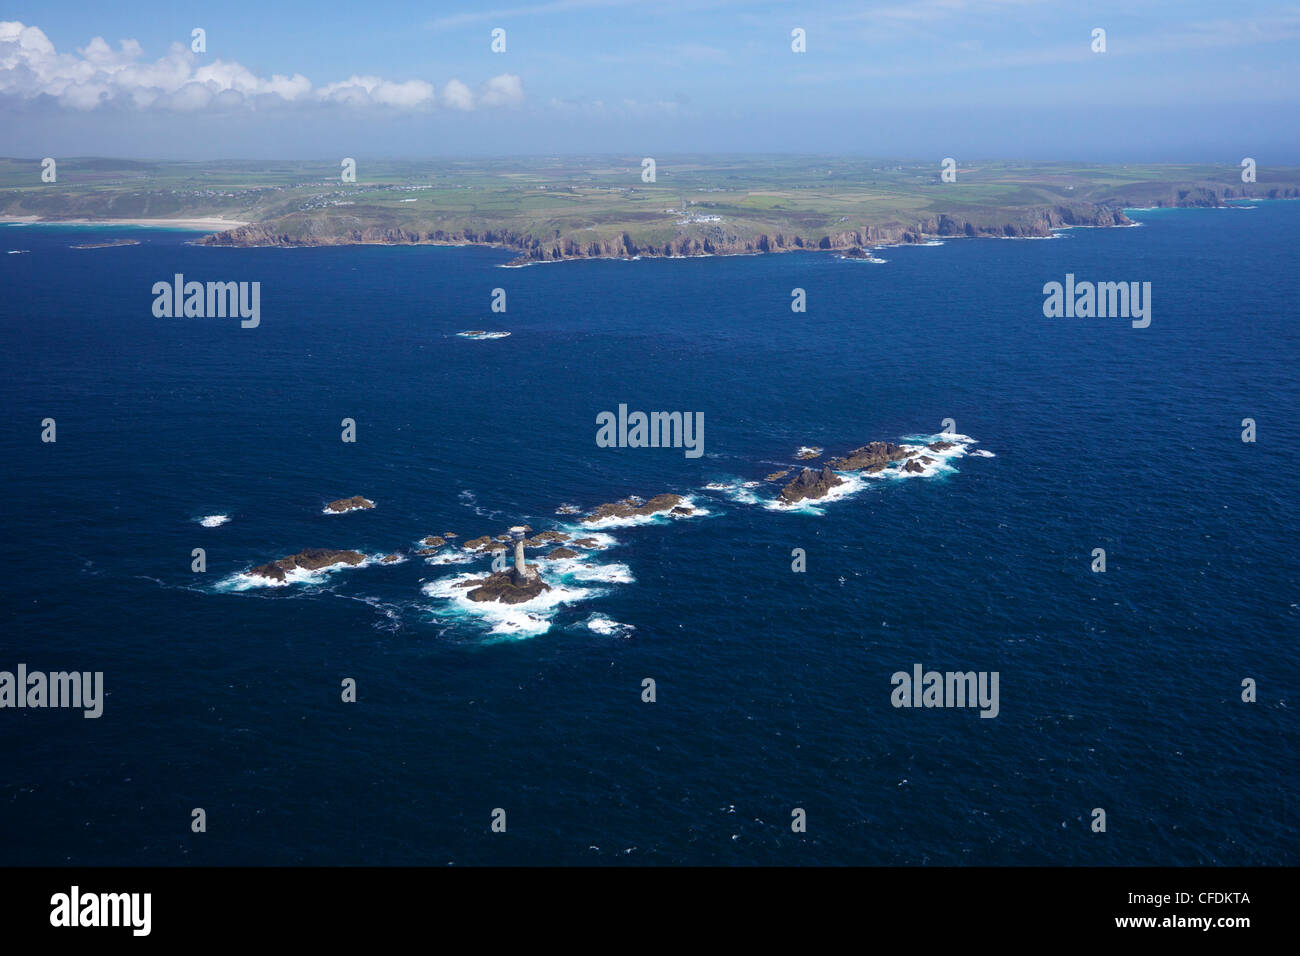 Aerial photo of Longships Lighthouse and Lands End Peninsula, West Penwith, Cornwall, England, United Kingdom, Europe - Stock Image